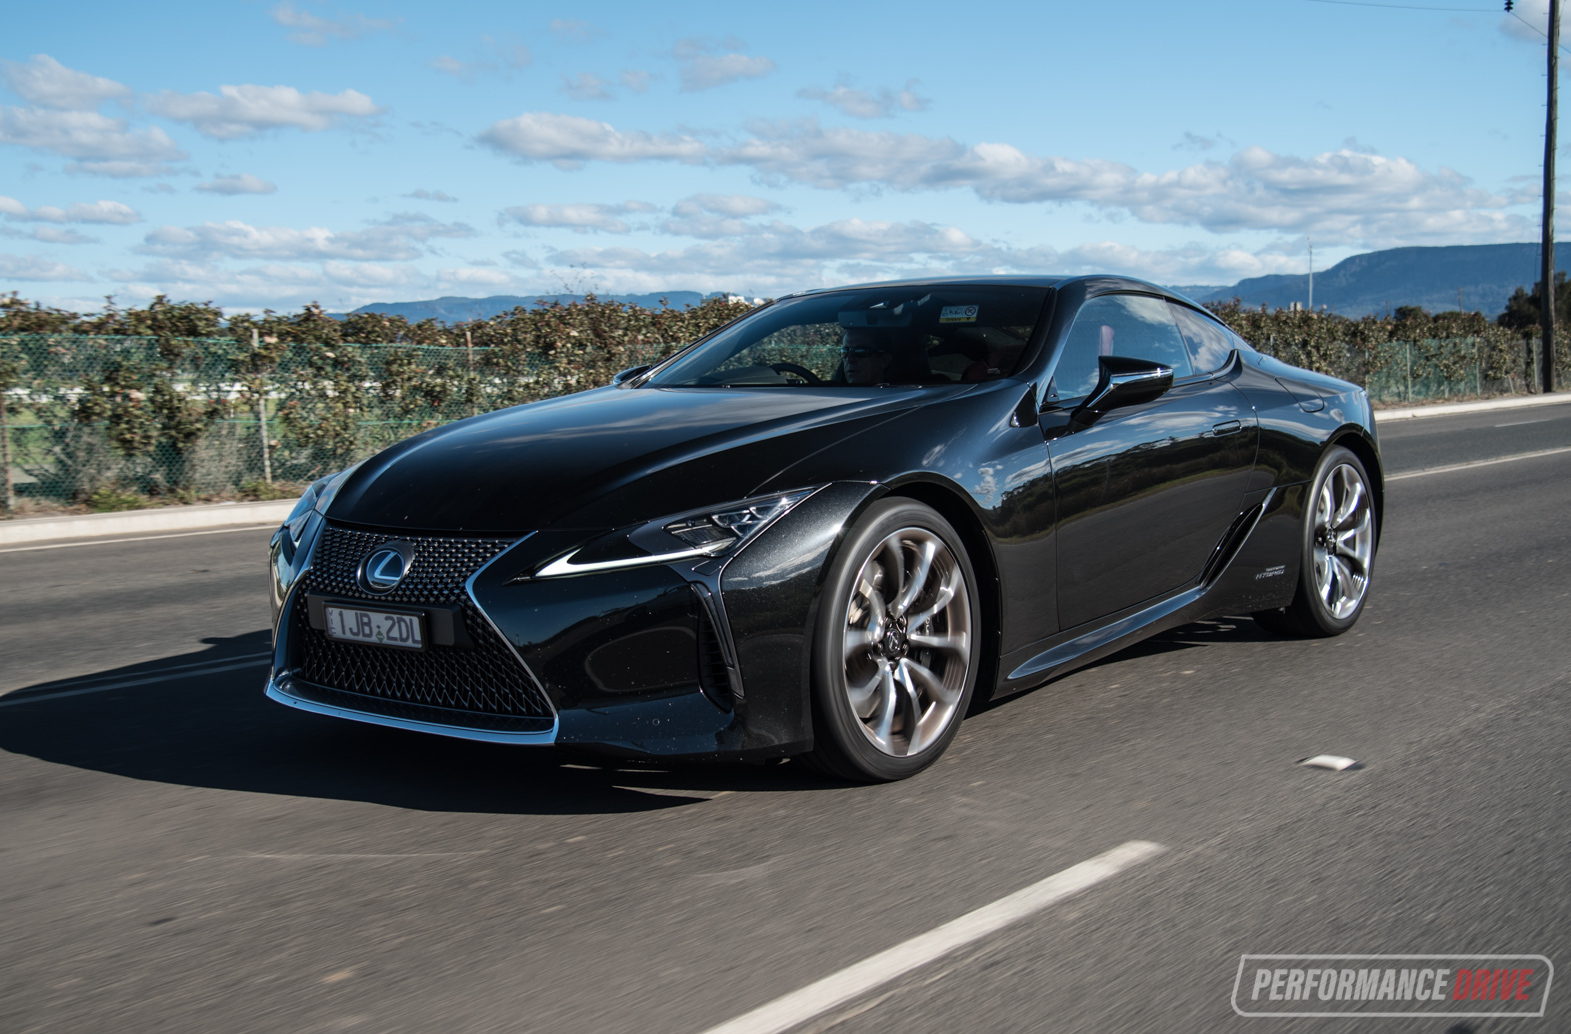 2017 lexus lc 500 sport review autocar autos post. Black Bedroom Furniture Sets. Home Design Ideas